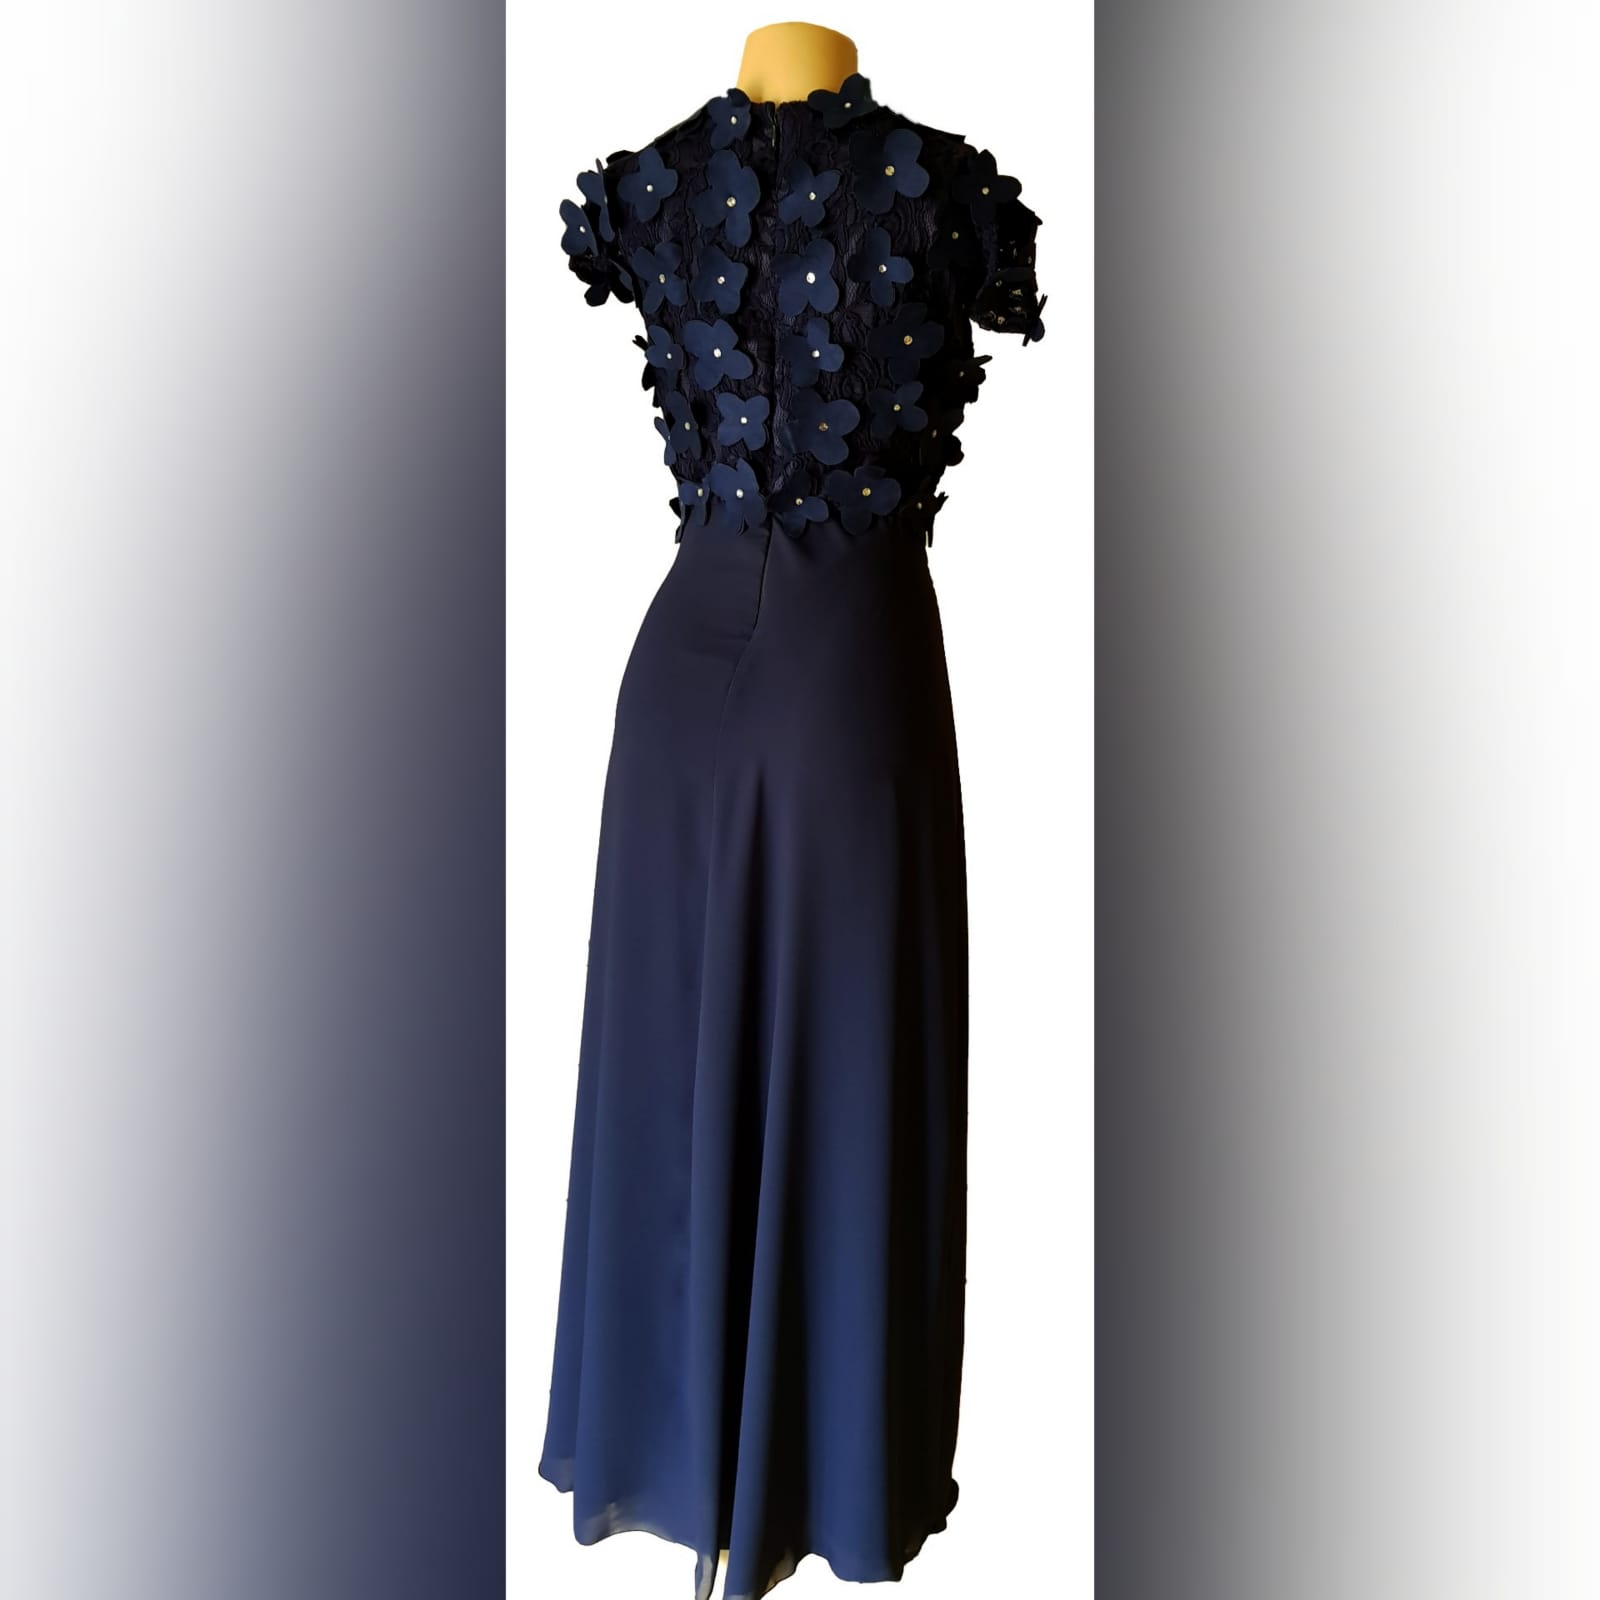 Navy blue long evening dress bodice 4 navy blue long evening dress bodice in lace with 3d suede flowers, detailed with silver beads.